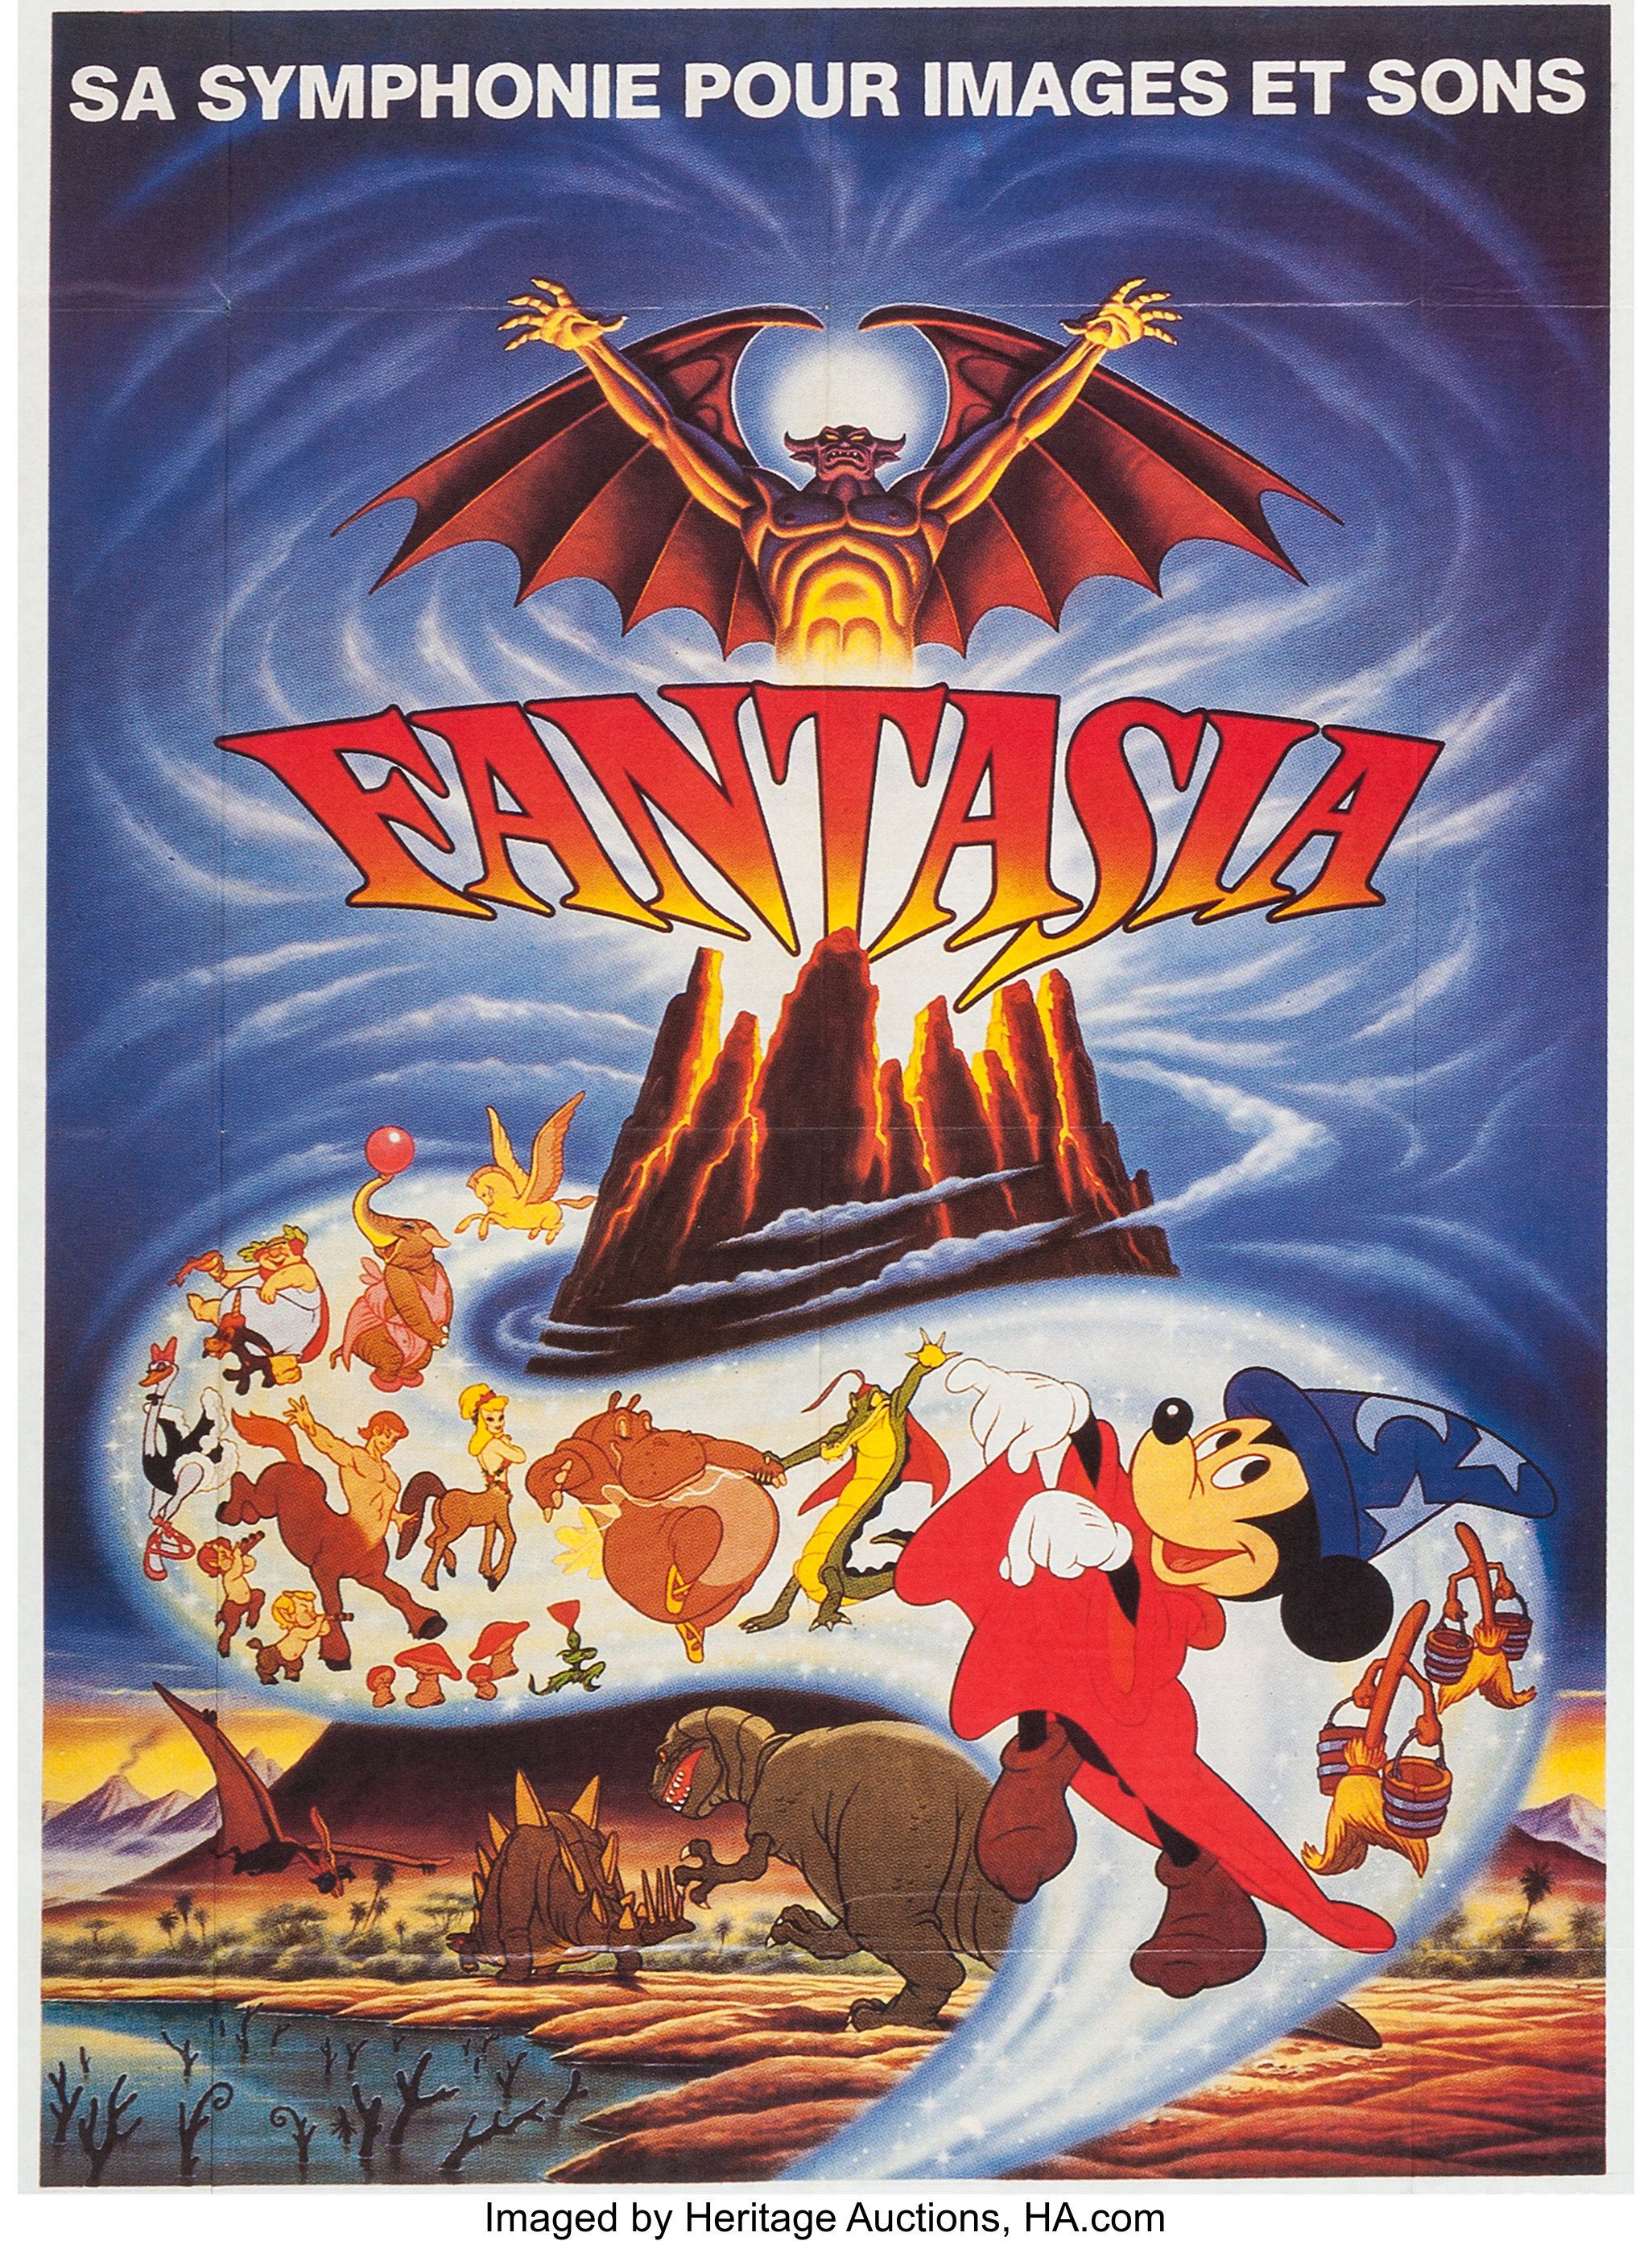 Fantasia Mickey Mouse French Re Release Movie Poster Walt Disney Lot 14704 Heritage Auctions